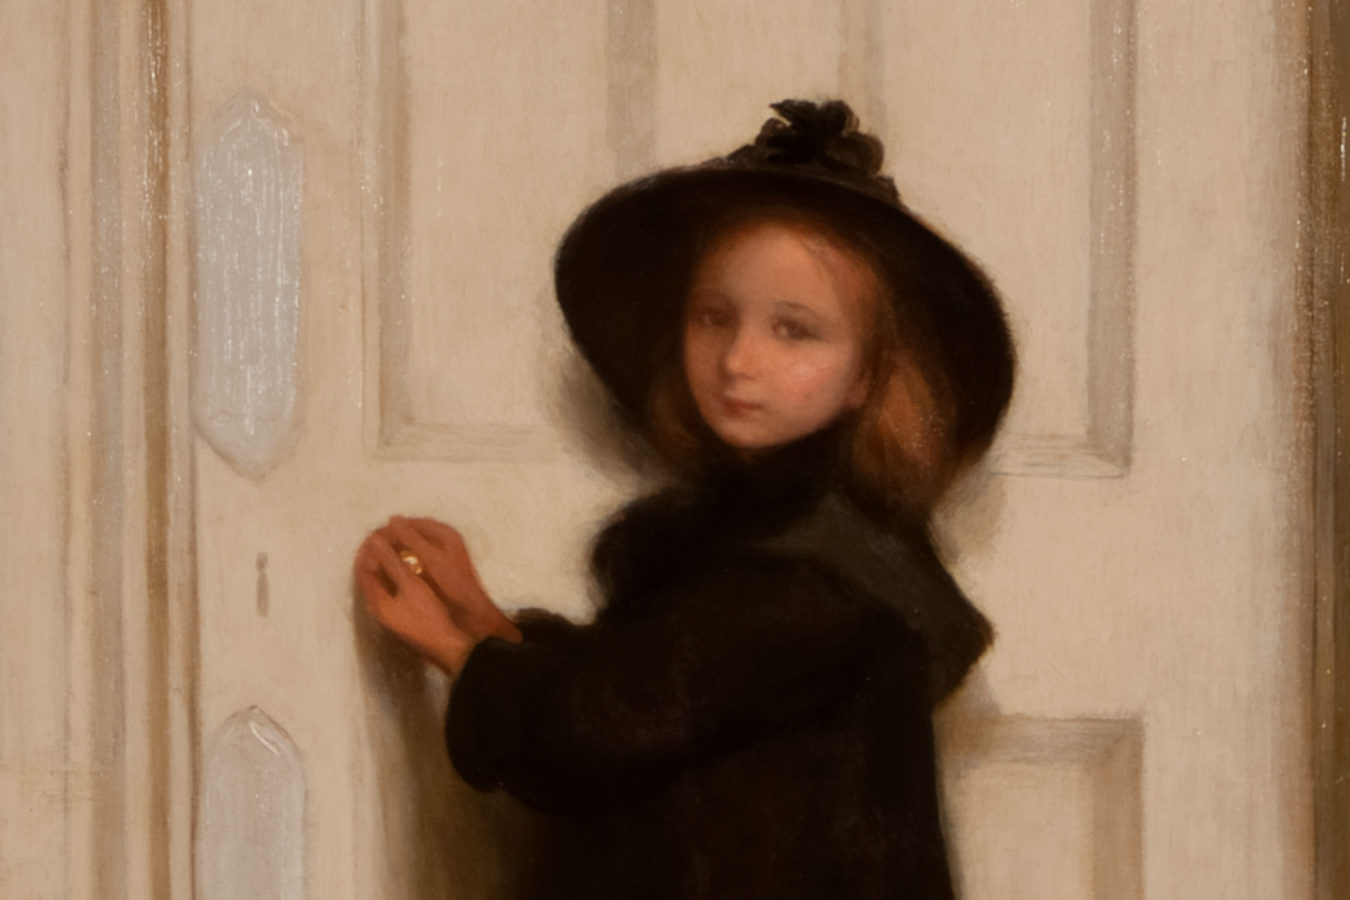 The Little Girl at the Door painting, featuring  young girl in a black outfit and hat, looking at the artist, with her hand on a white door knob.